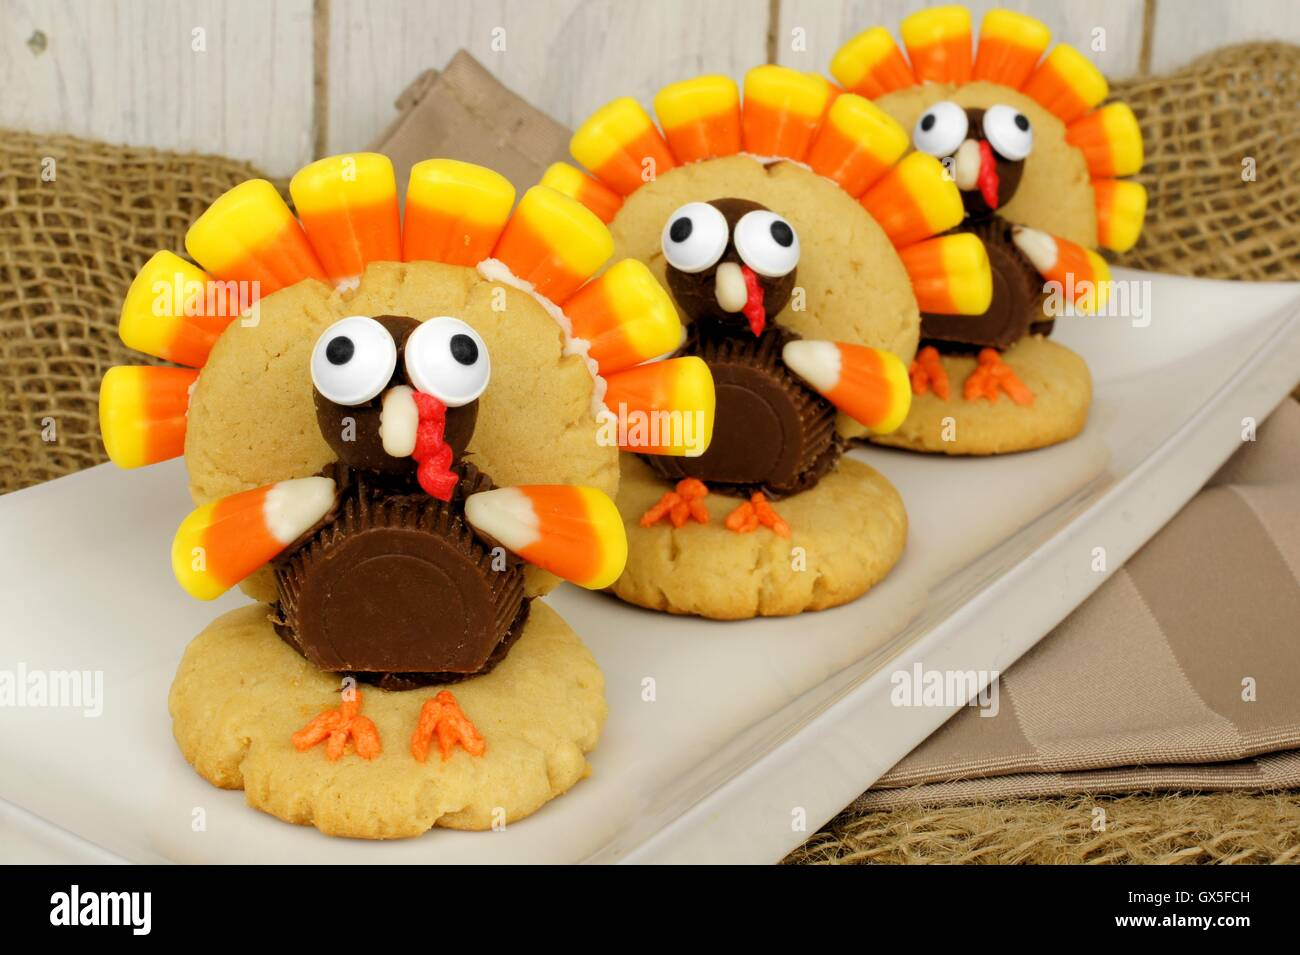 Homemade Thanksgiving turkey shaped cookies on a plate - Stock Image